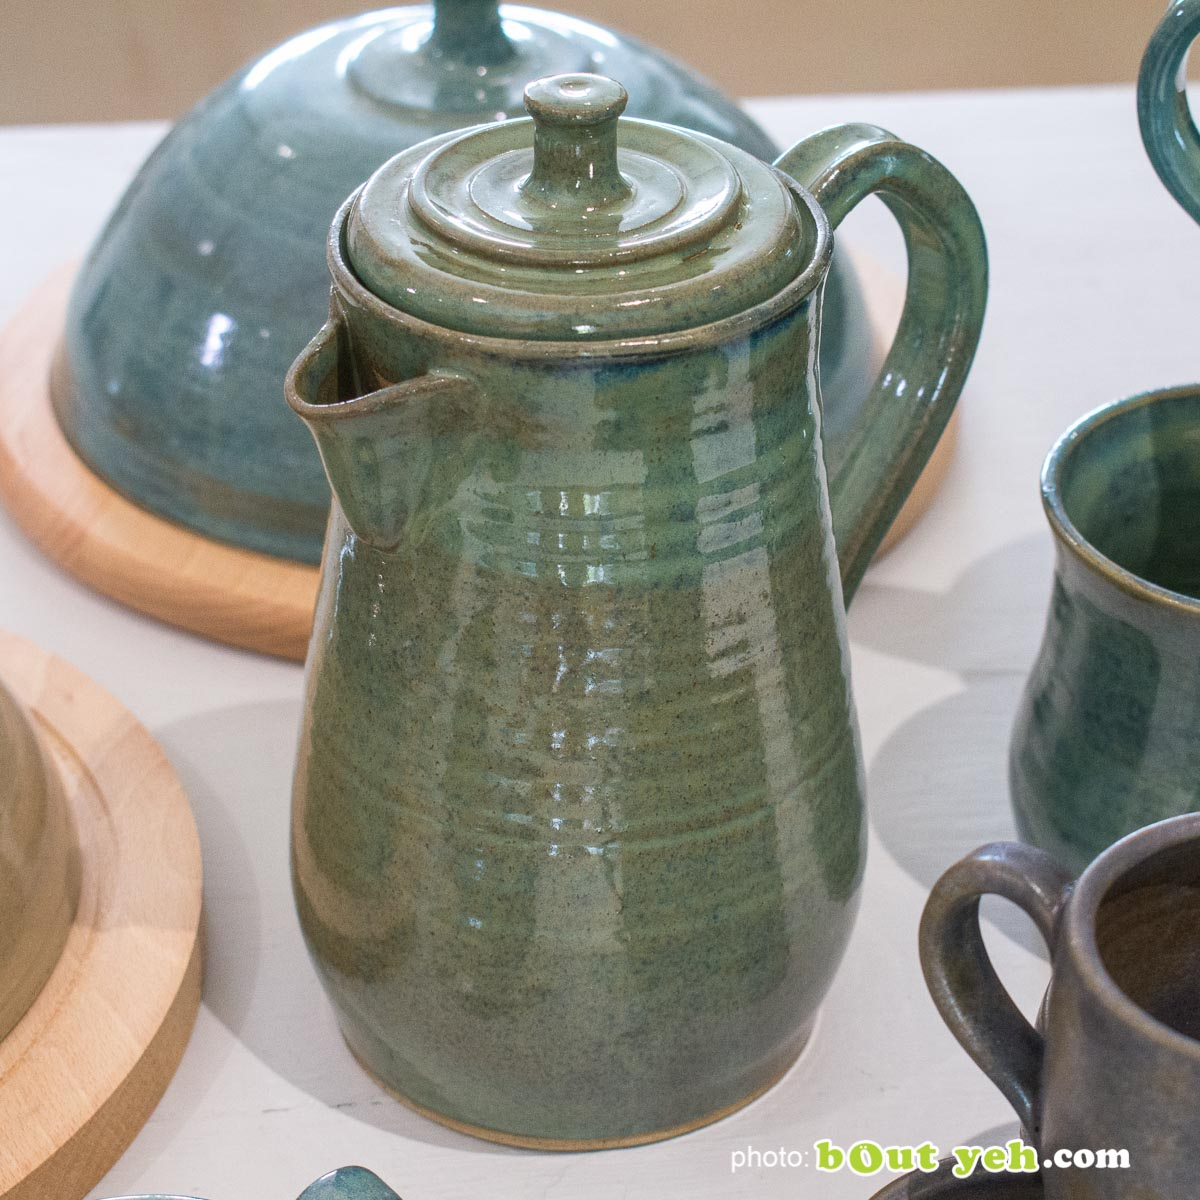 Contemporary hand made Irish pottery - tiffany blue and green coffee pot from Bout Yeh arts and crafts gallery Belfast and Dublin. Photo 1443